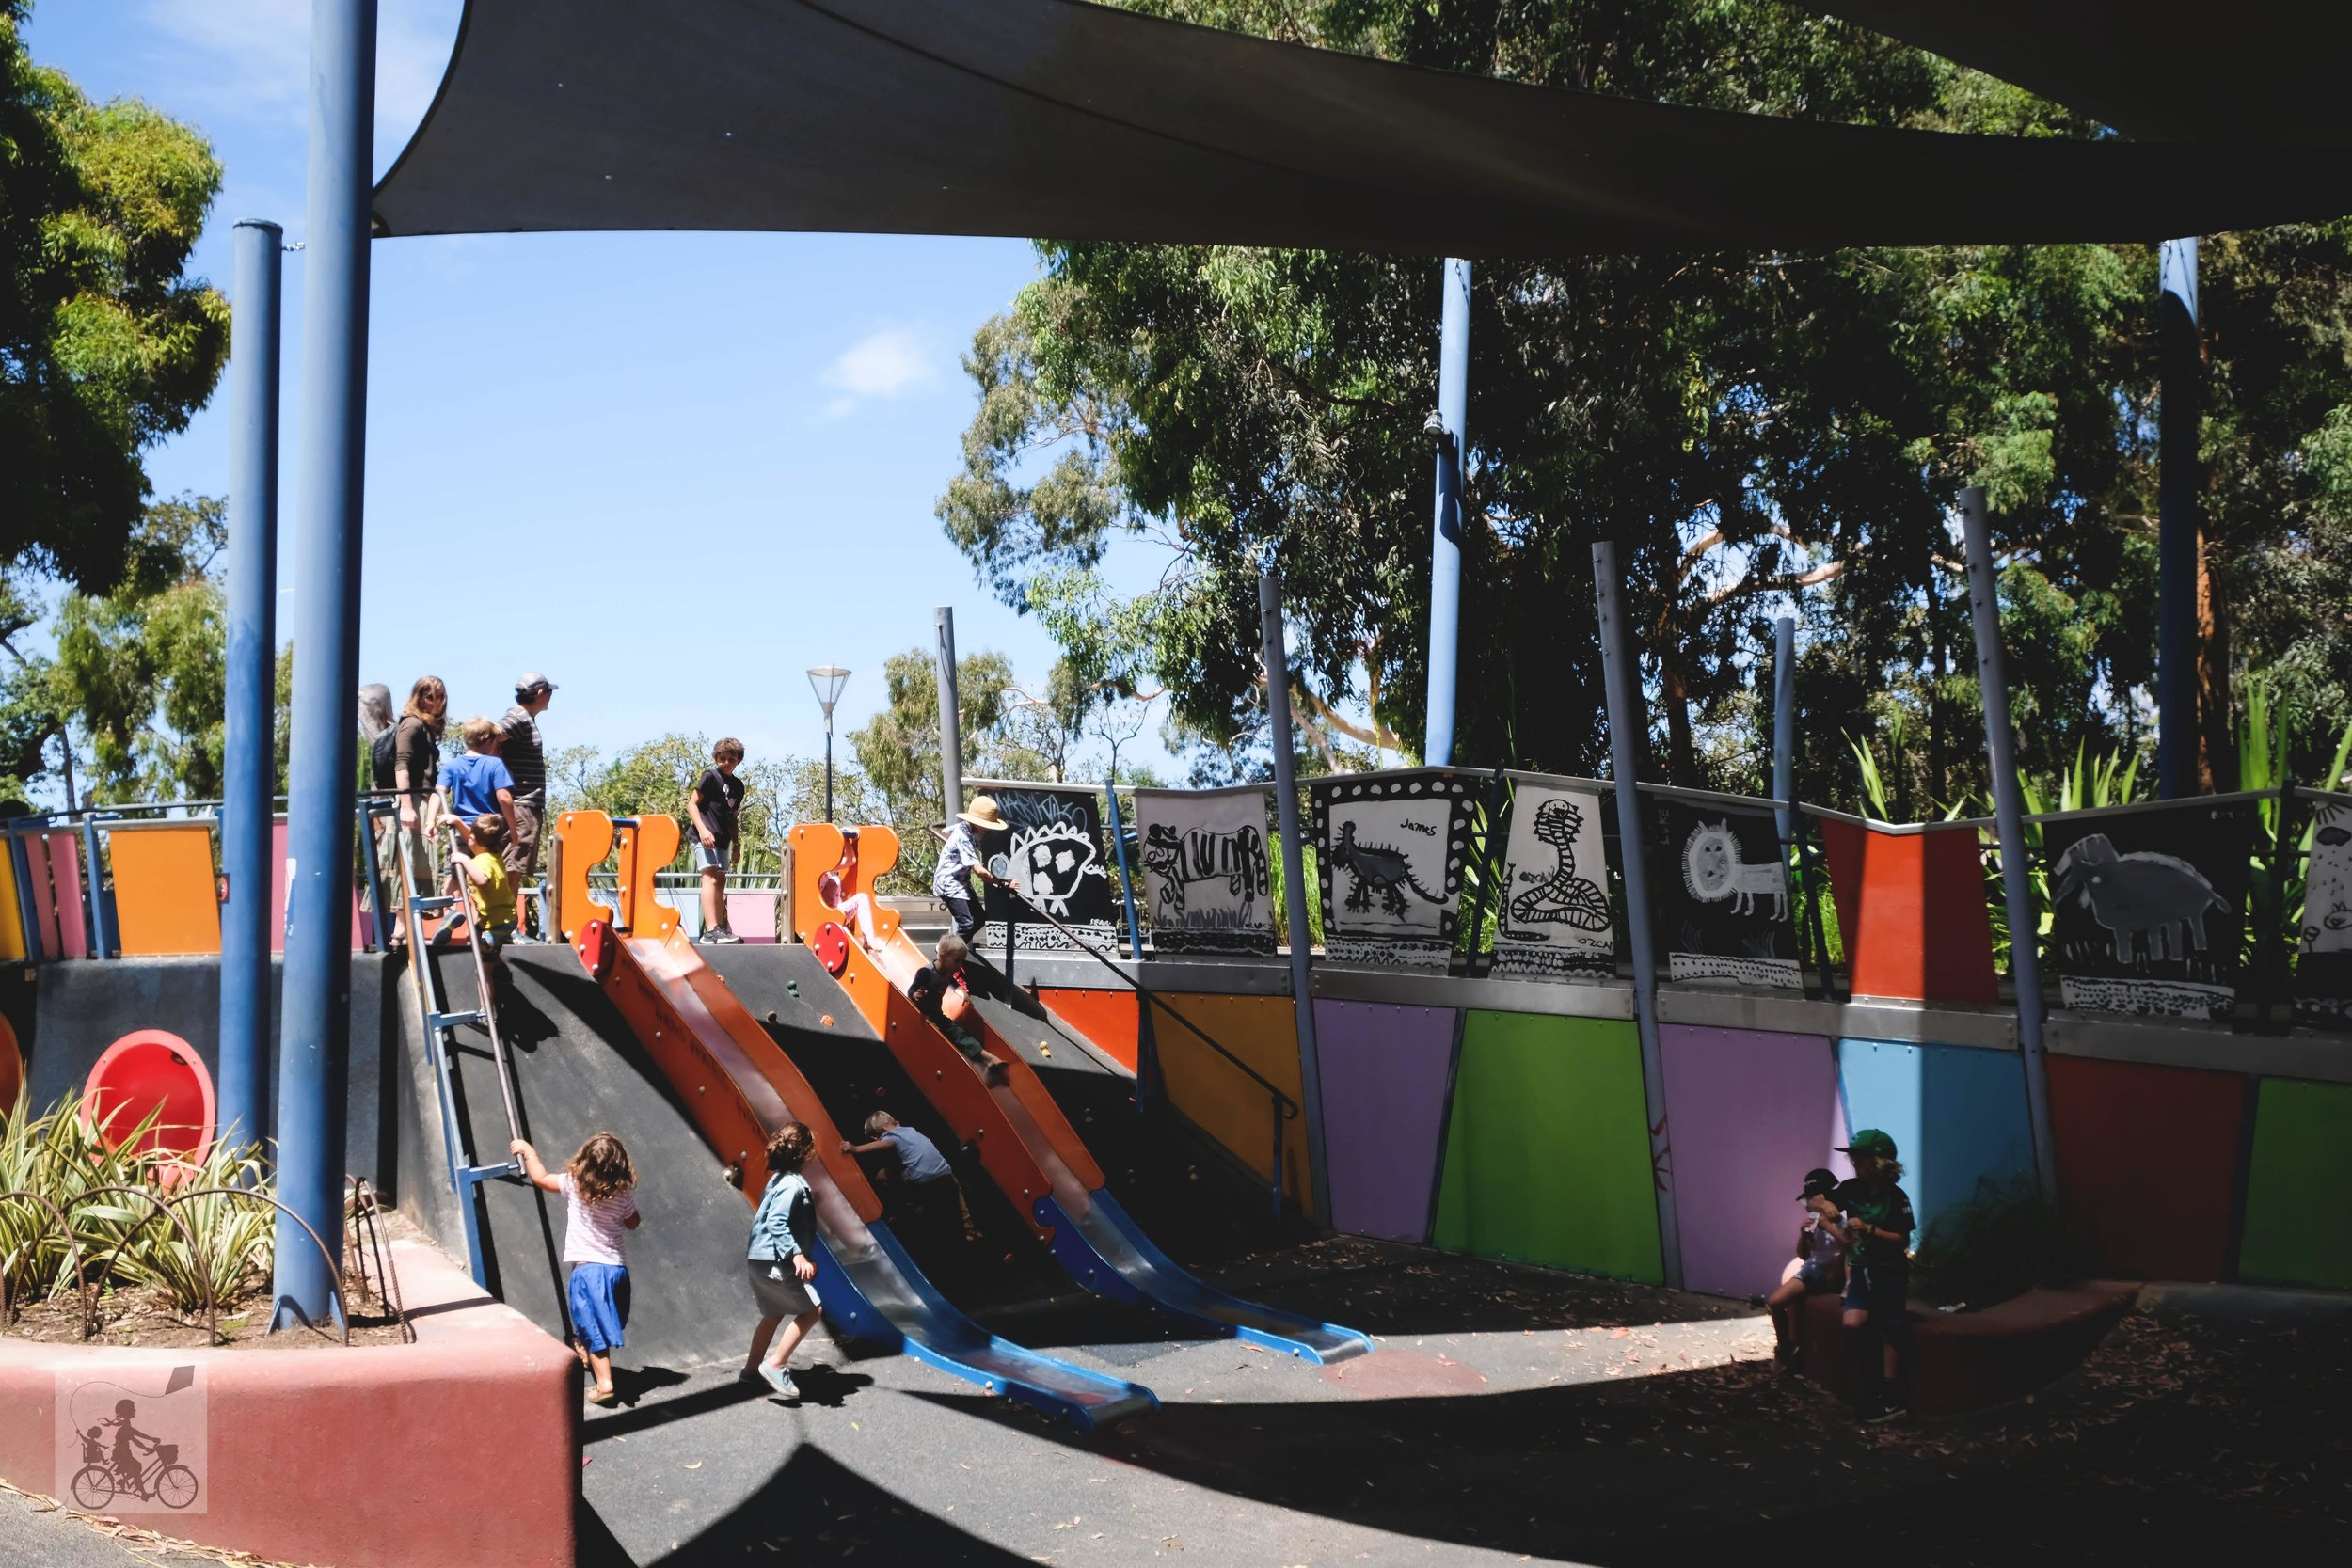 birrarung marr playground, melbourne - mamma knows melbourne